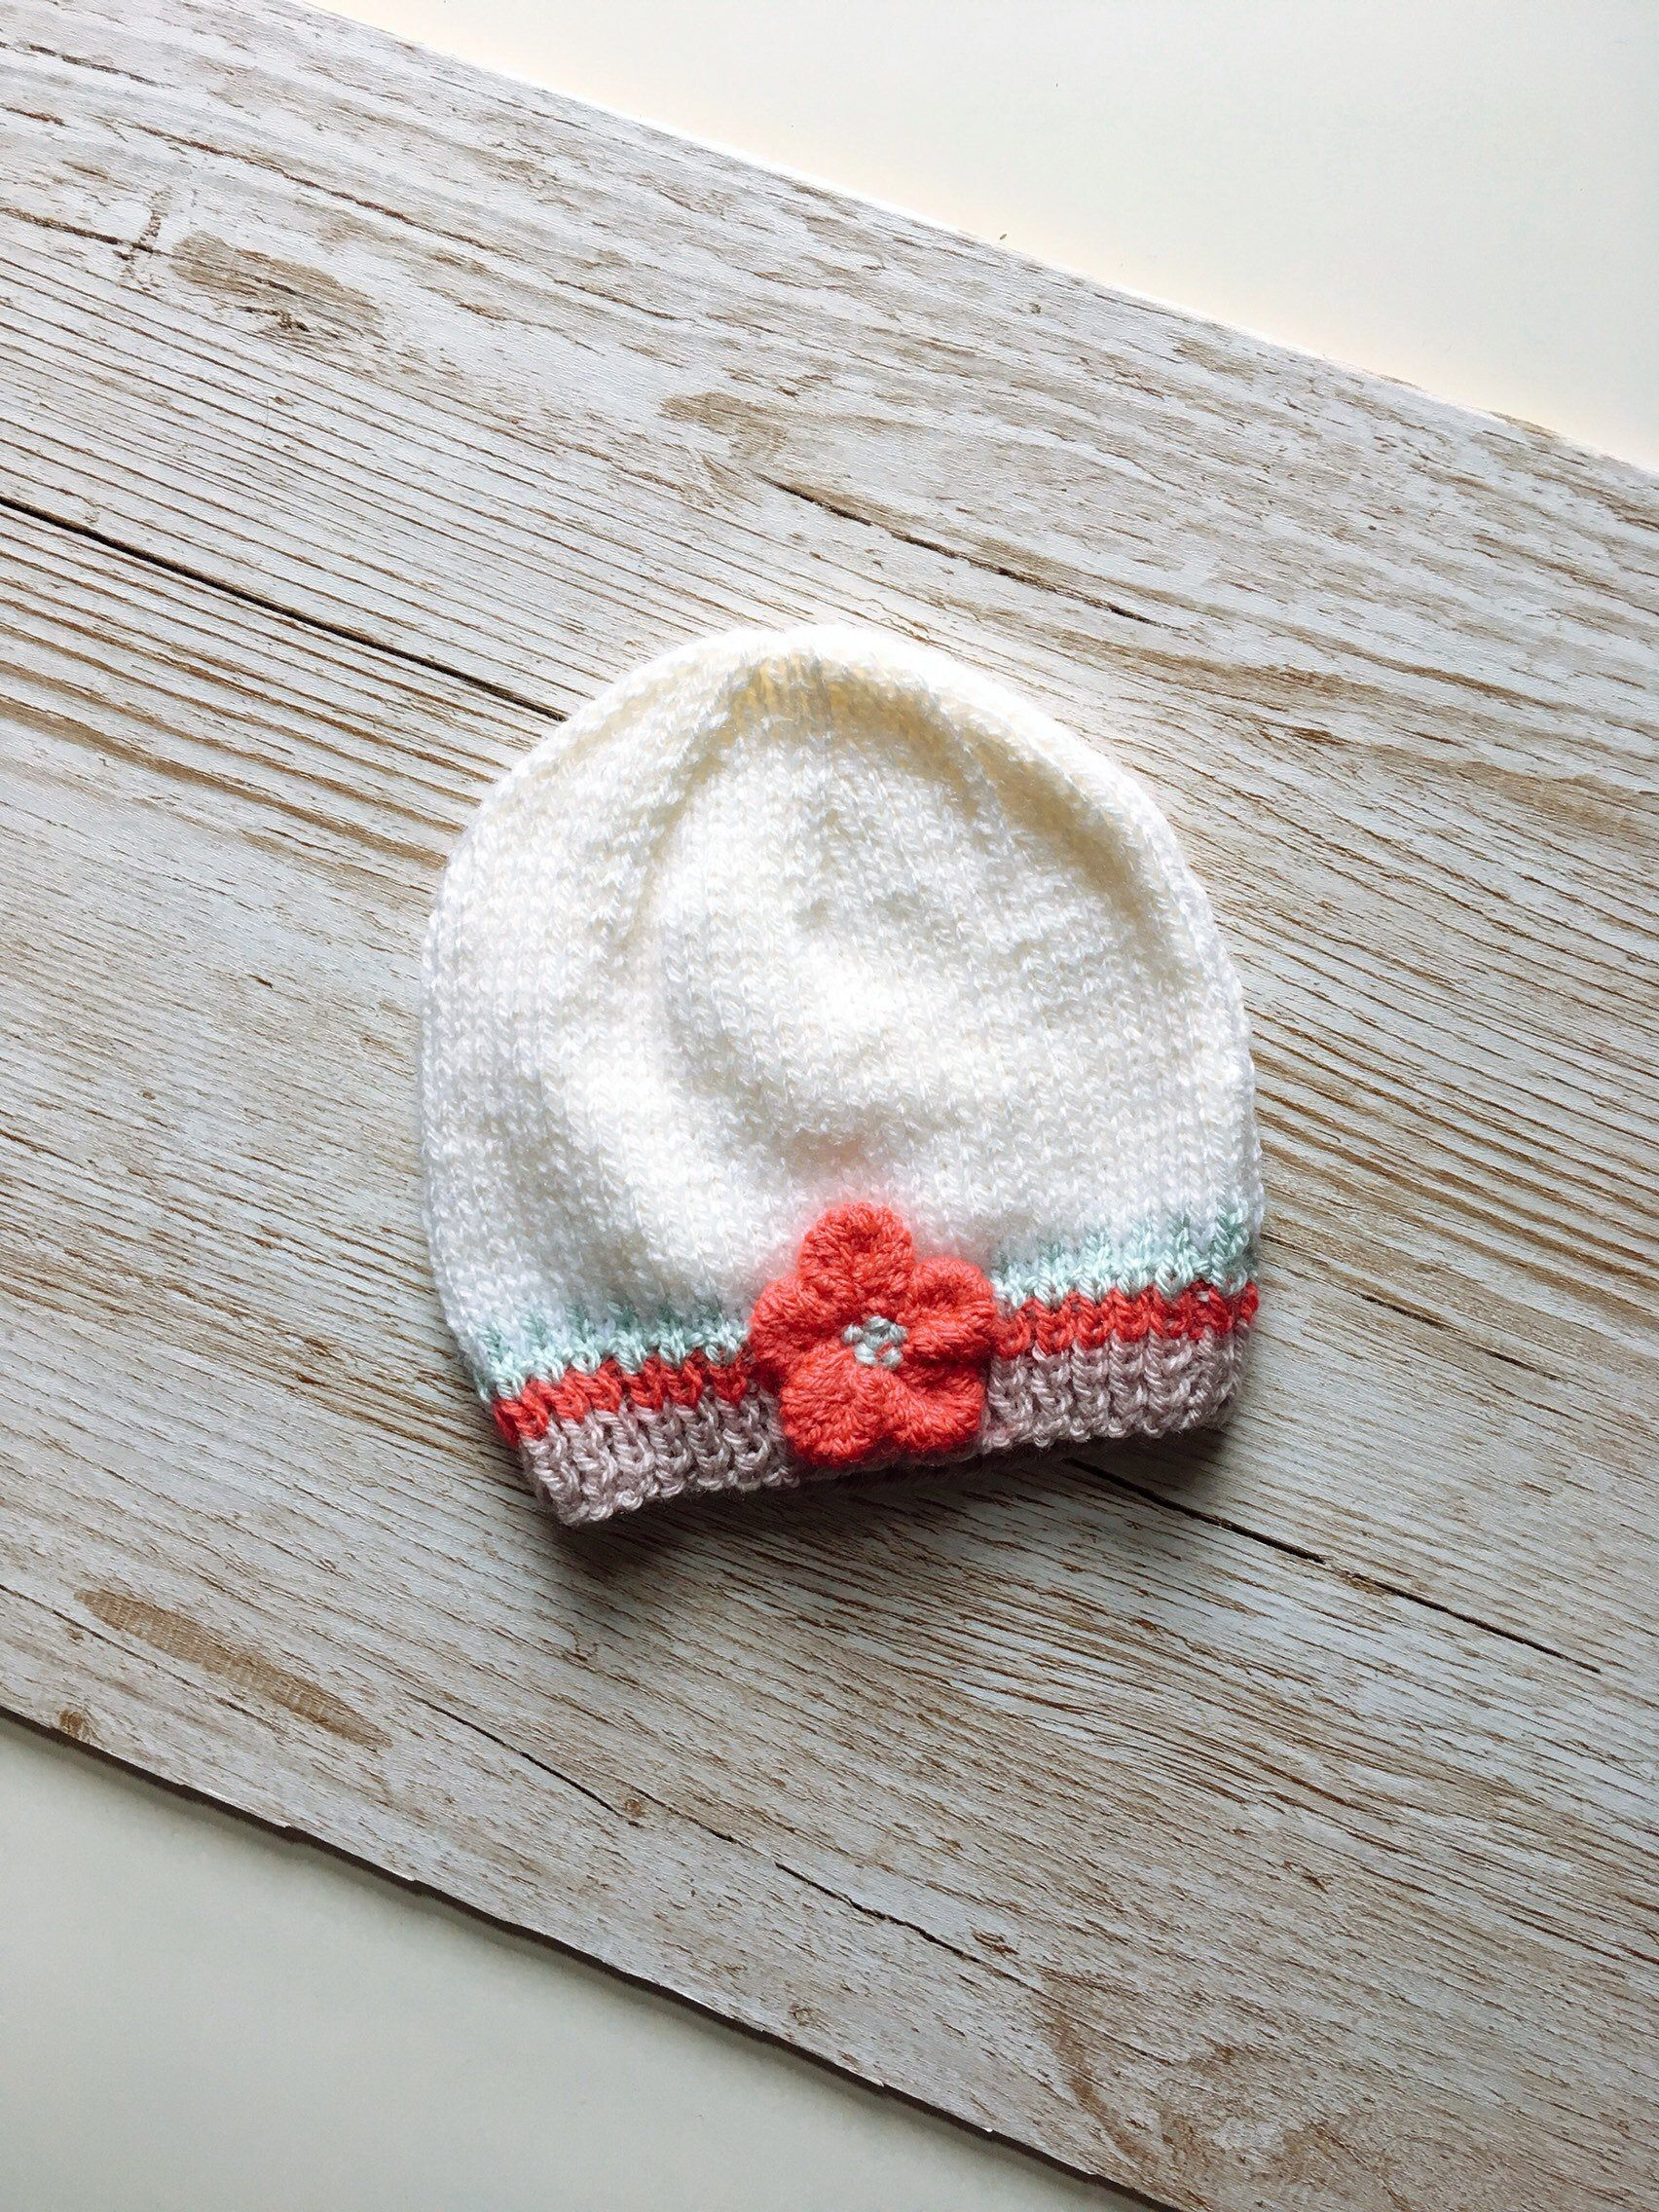 A  Raspberry pink Hand Knitted Toddlers Beanie hat in DK yarn